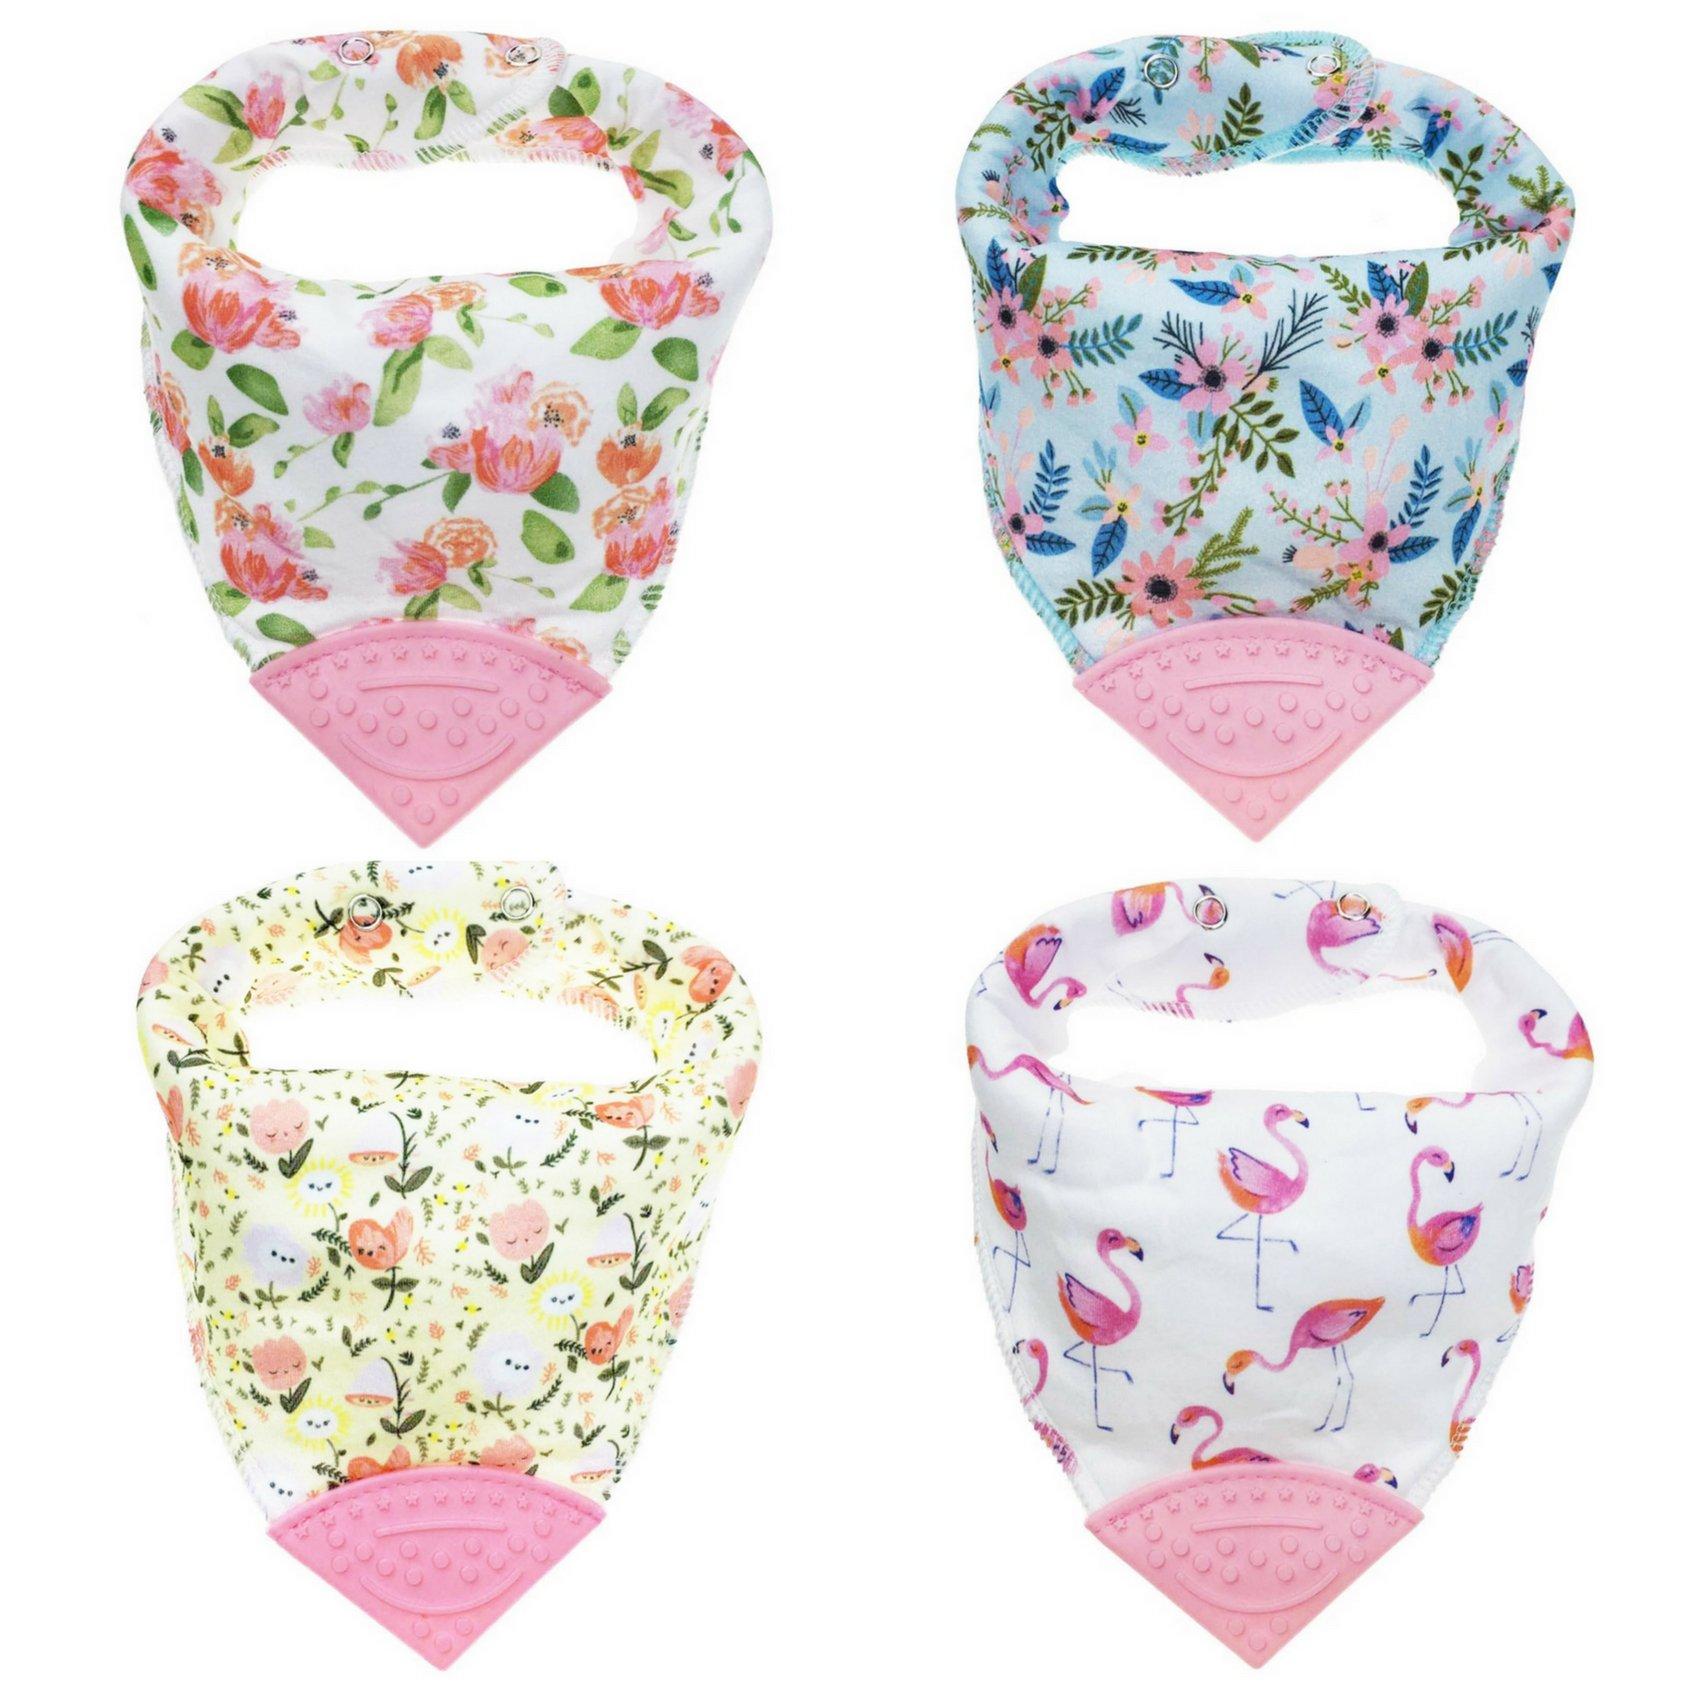 Honey Molly Baby Bandana Bibs for Teething and Drooling - 4 Pack Soft Drool Bibs for Boys and Girls - BPA-Free Food Grade Silicone Teether, Adjustable Nickel-Free Snaps - 100% Organic Cotton